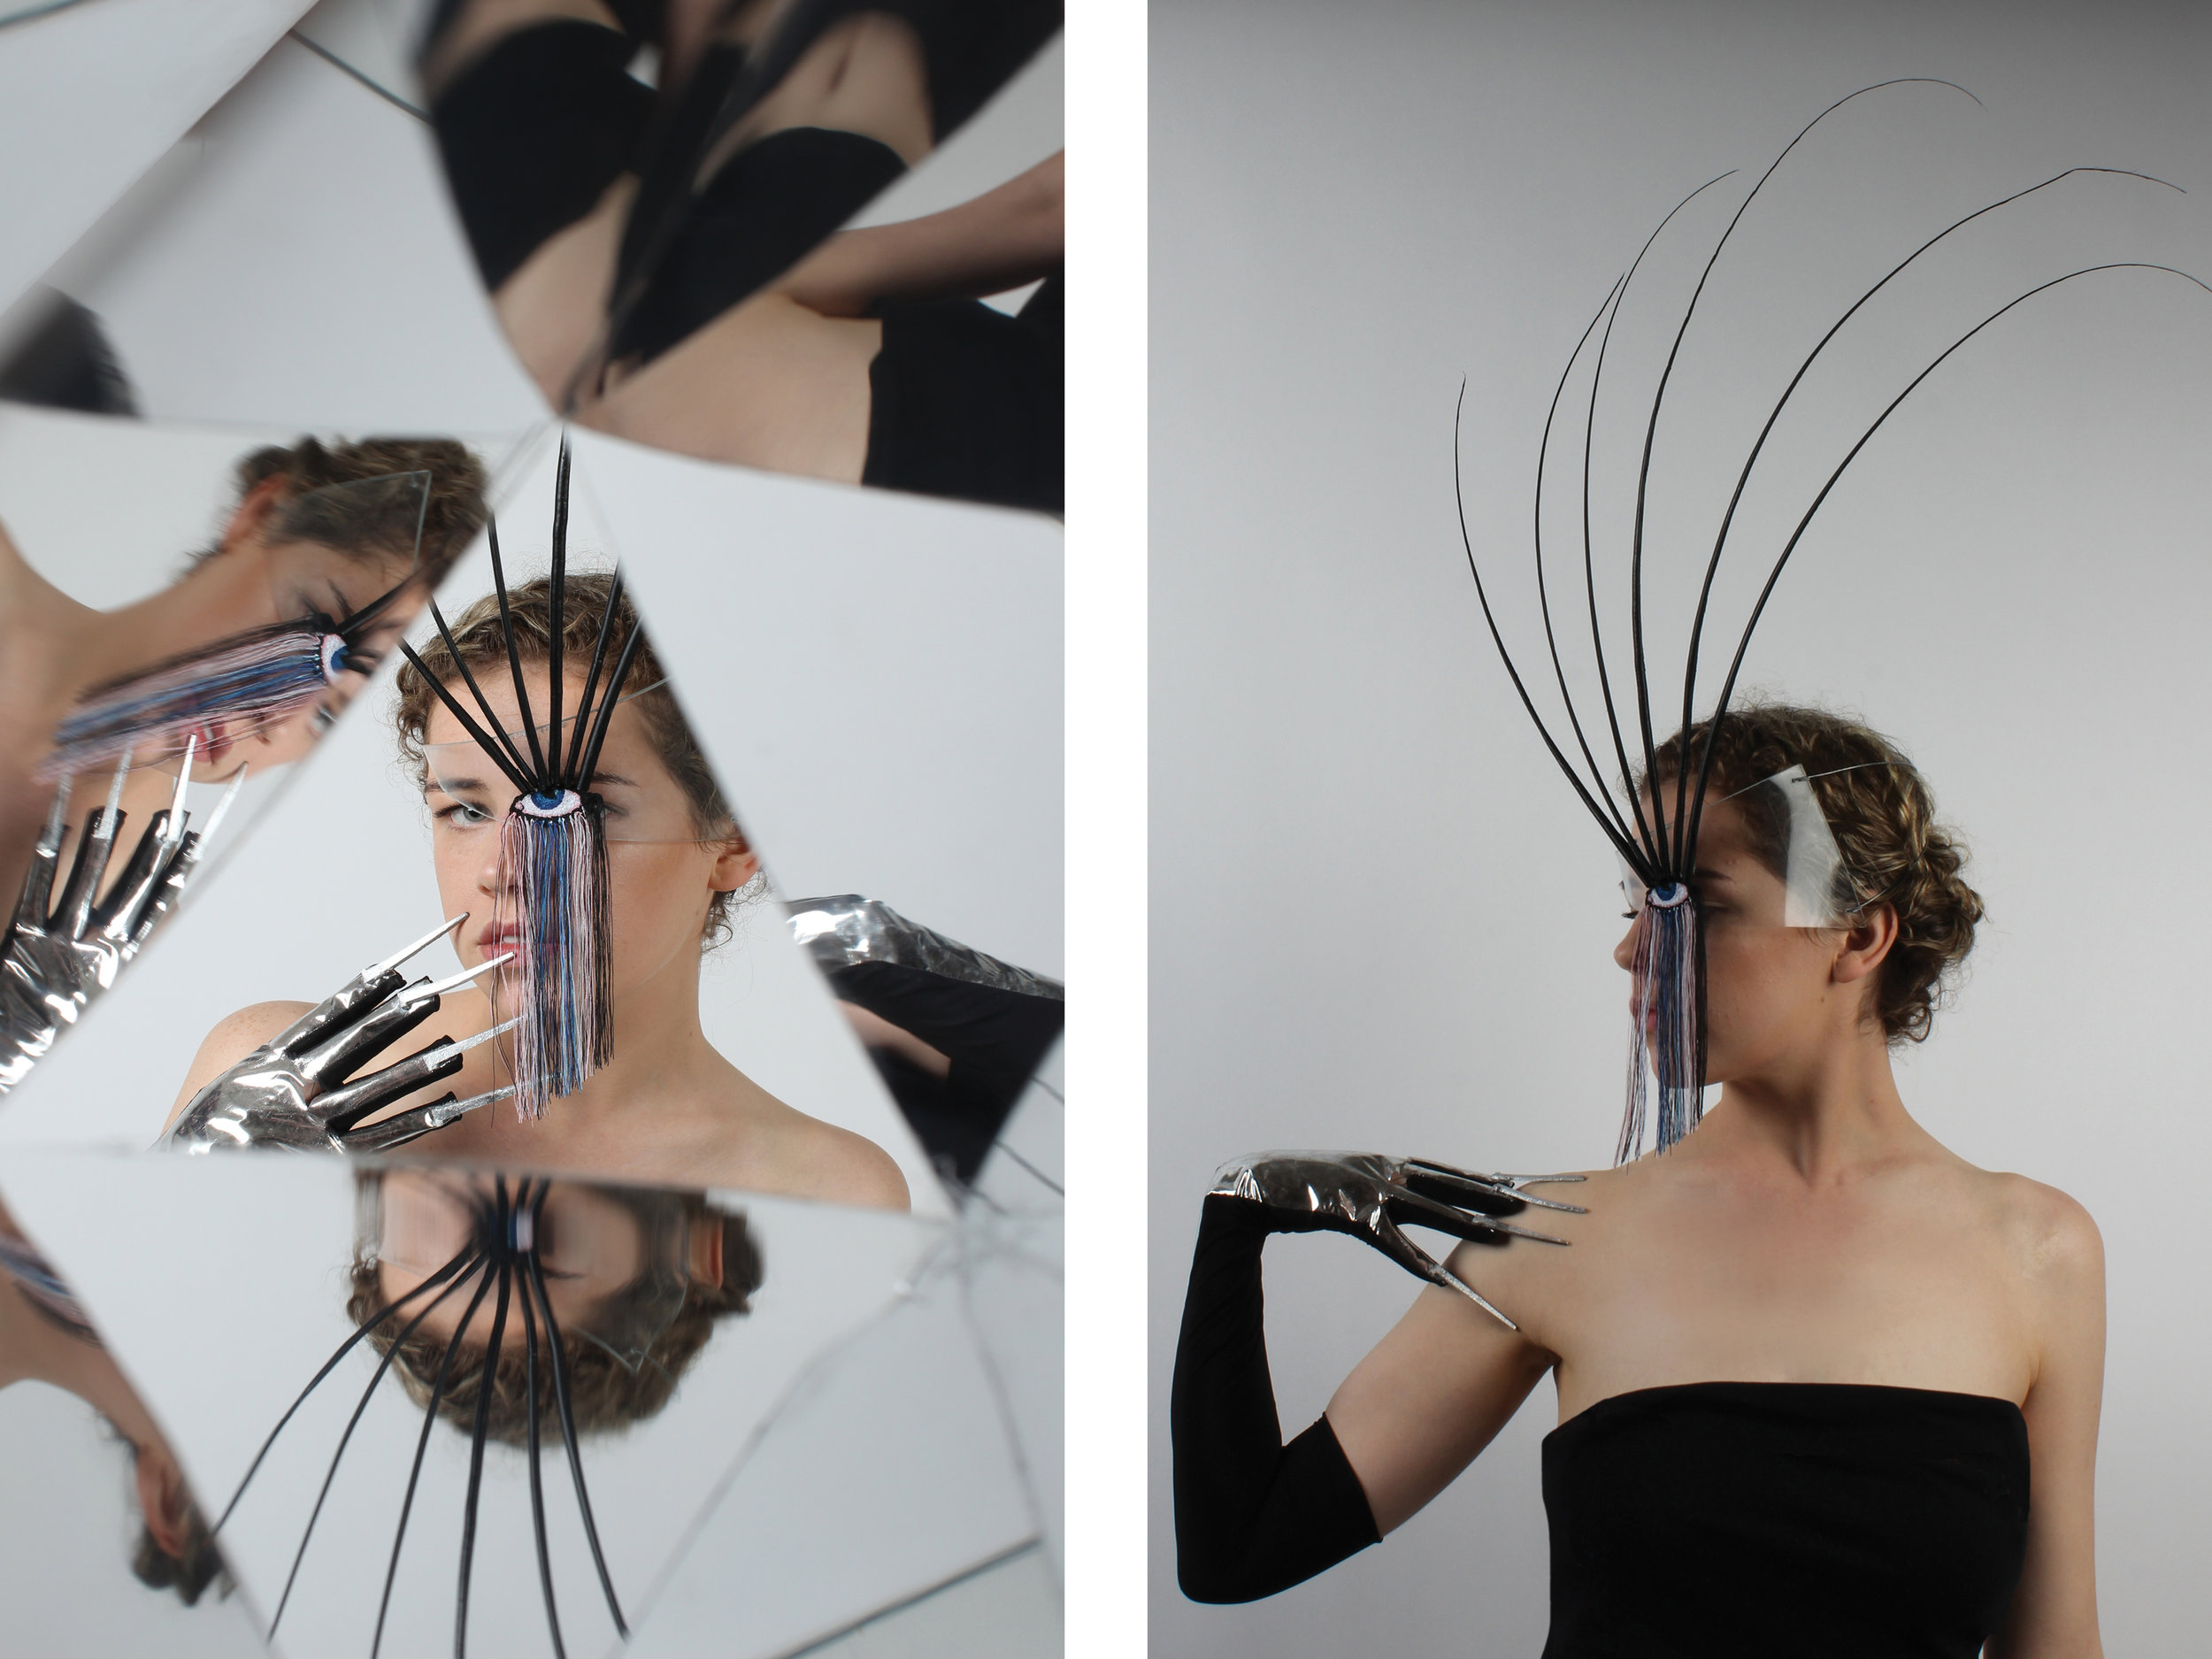 Perspex and ostrich quill mask with embroidered eye giving appearance of extravagant false eyelashes. Metallic evening glove with iron floorboard nails to represent acrylic nails. Surrealist pun and  homage  to Elsa Schiaparelli.